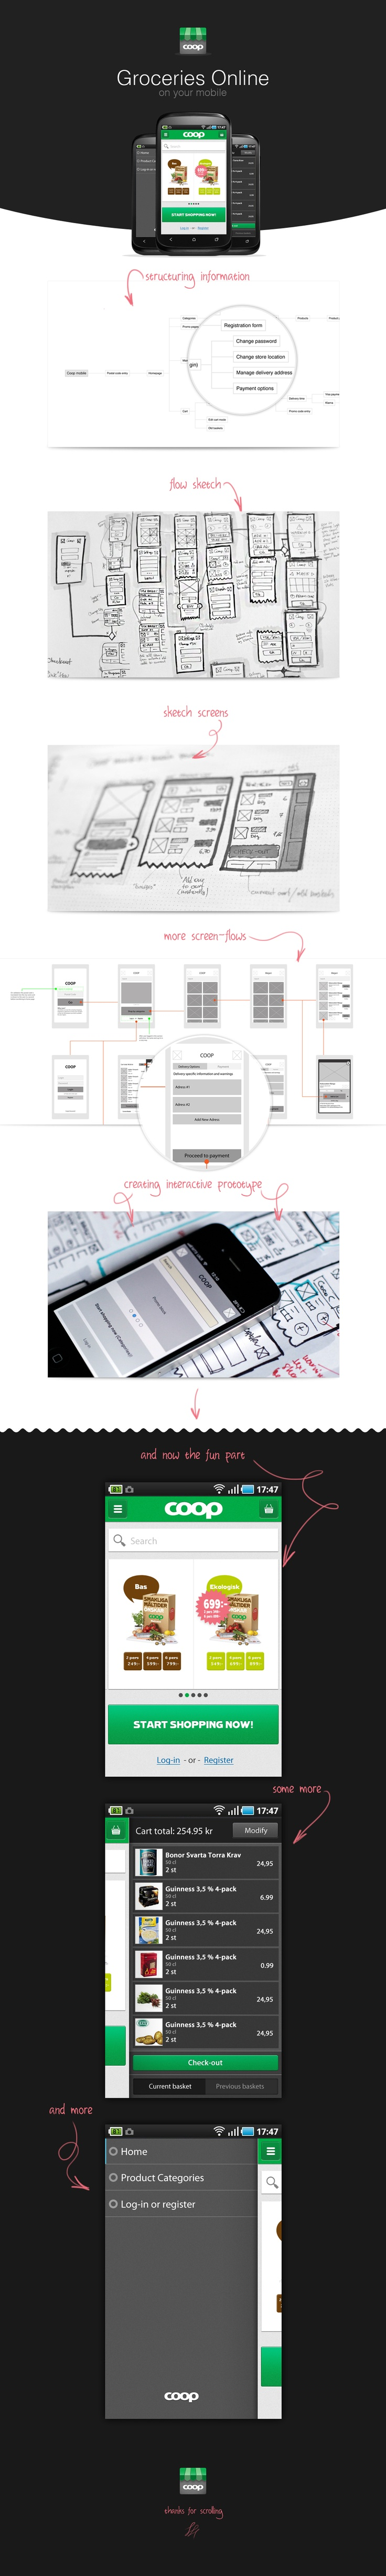 Coop Mobile App #Wireframes and #prototype #development